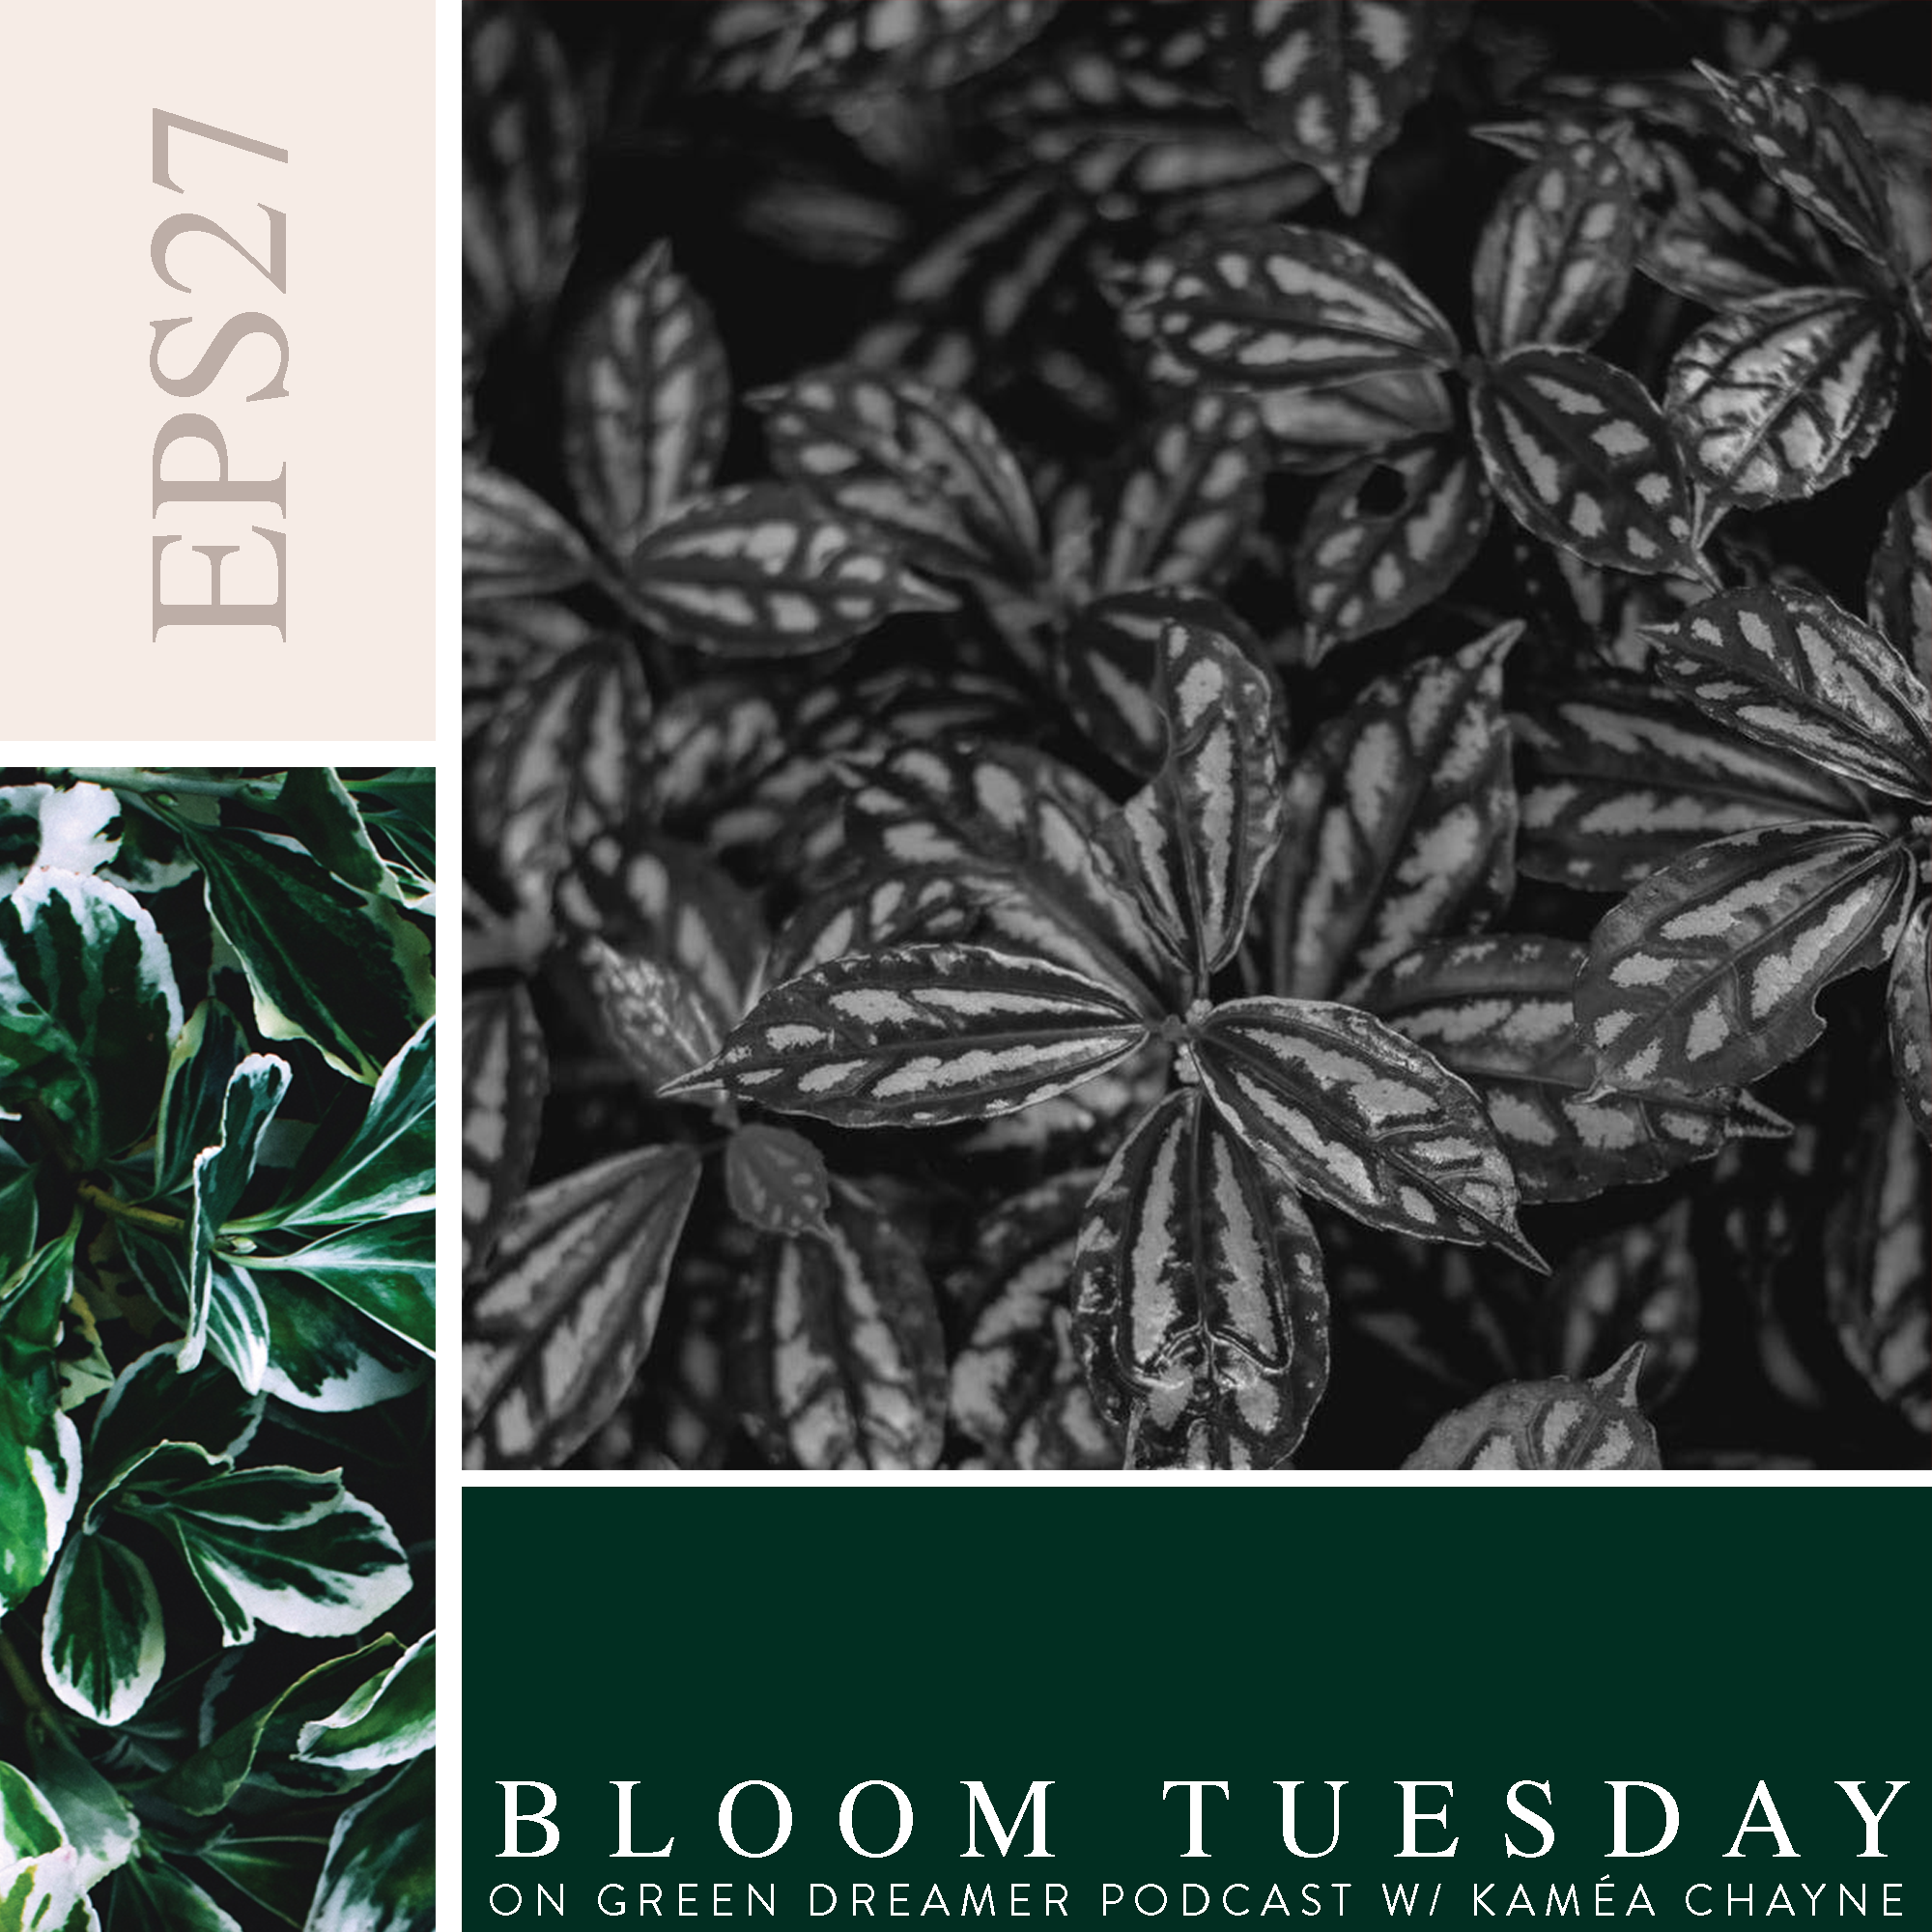 27) BLOOM TUESDAY